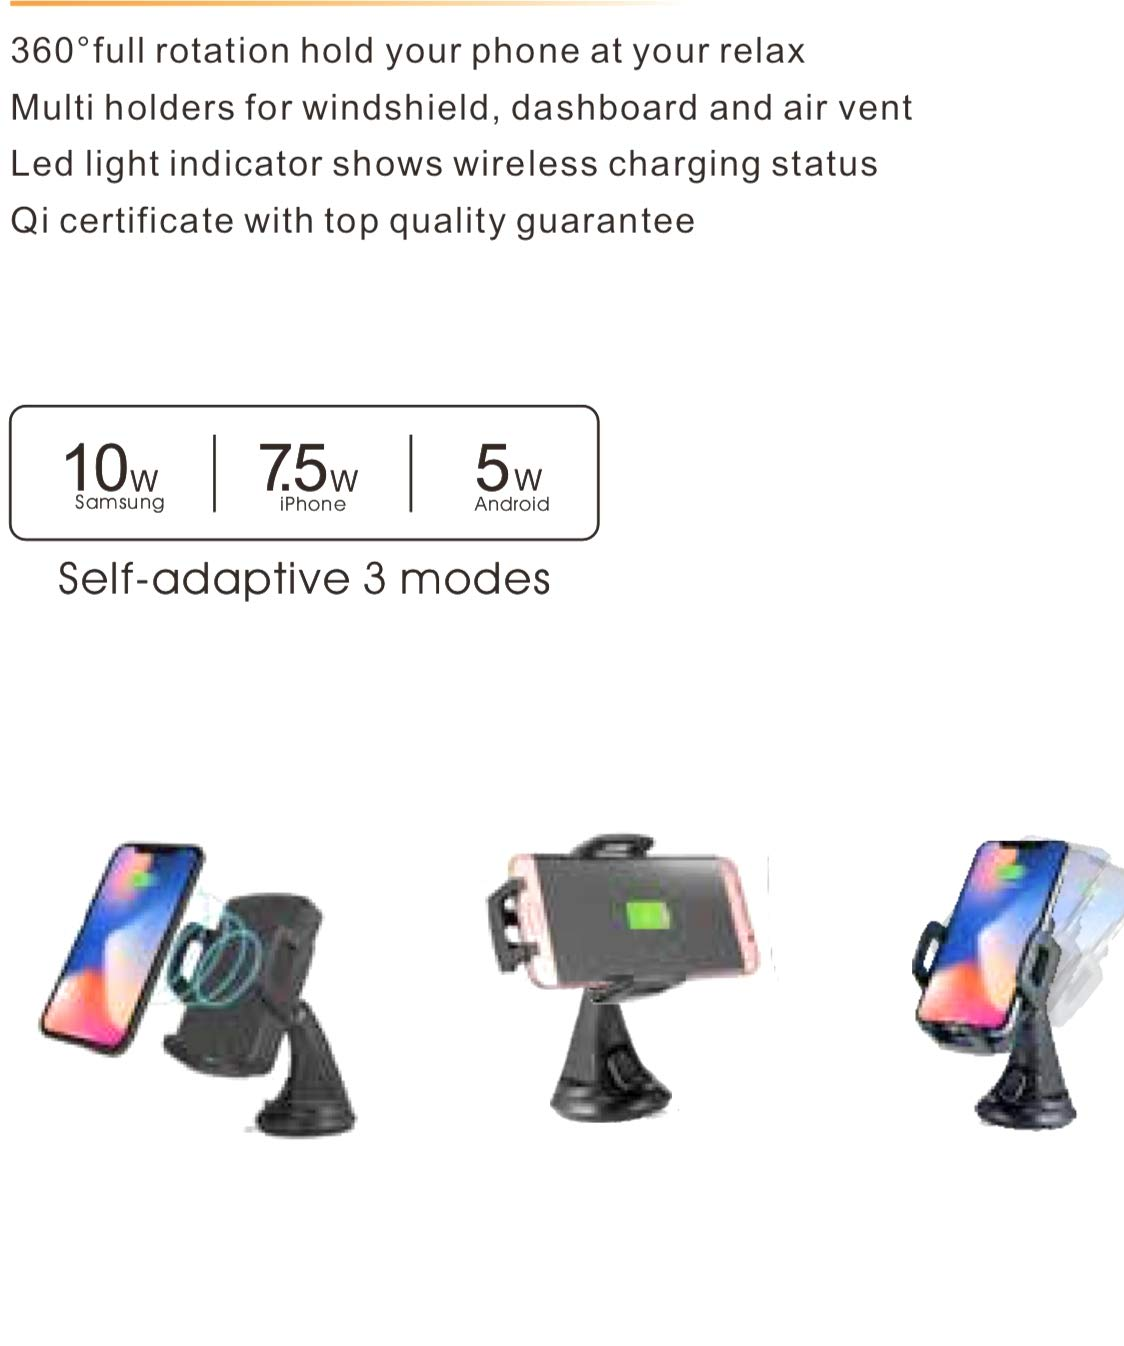 Megwoz Wireless Car Charger Mount, 7.5W/10W Fast Charging, Auto-Clamping, Dashboard Air Vent Phone Holder Mount, Compatible iPhone Xs/Xs Max/XR/X/8/8+, Samsung Note 9/8/7 S9/8/7 & Qi Enabled Devices